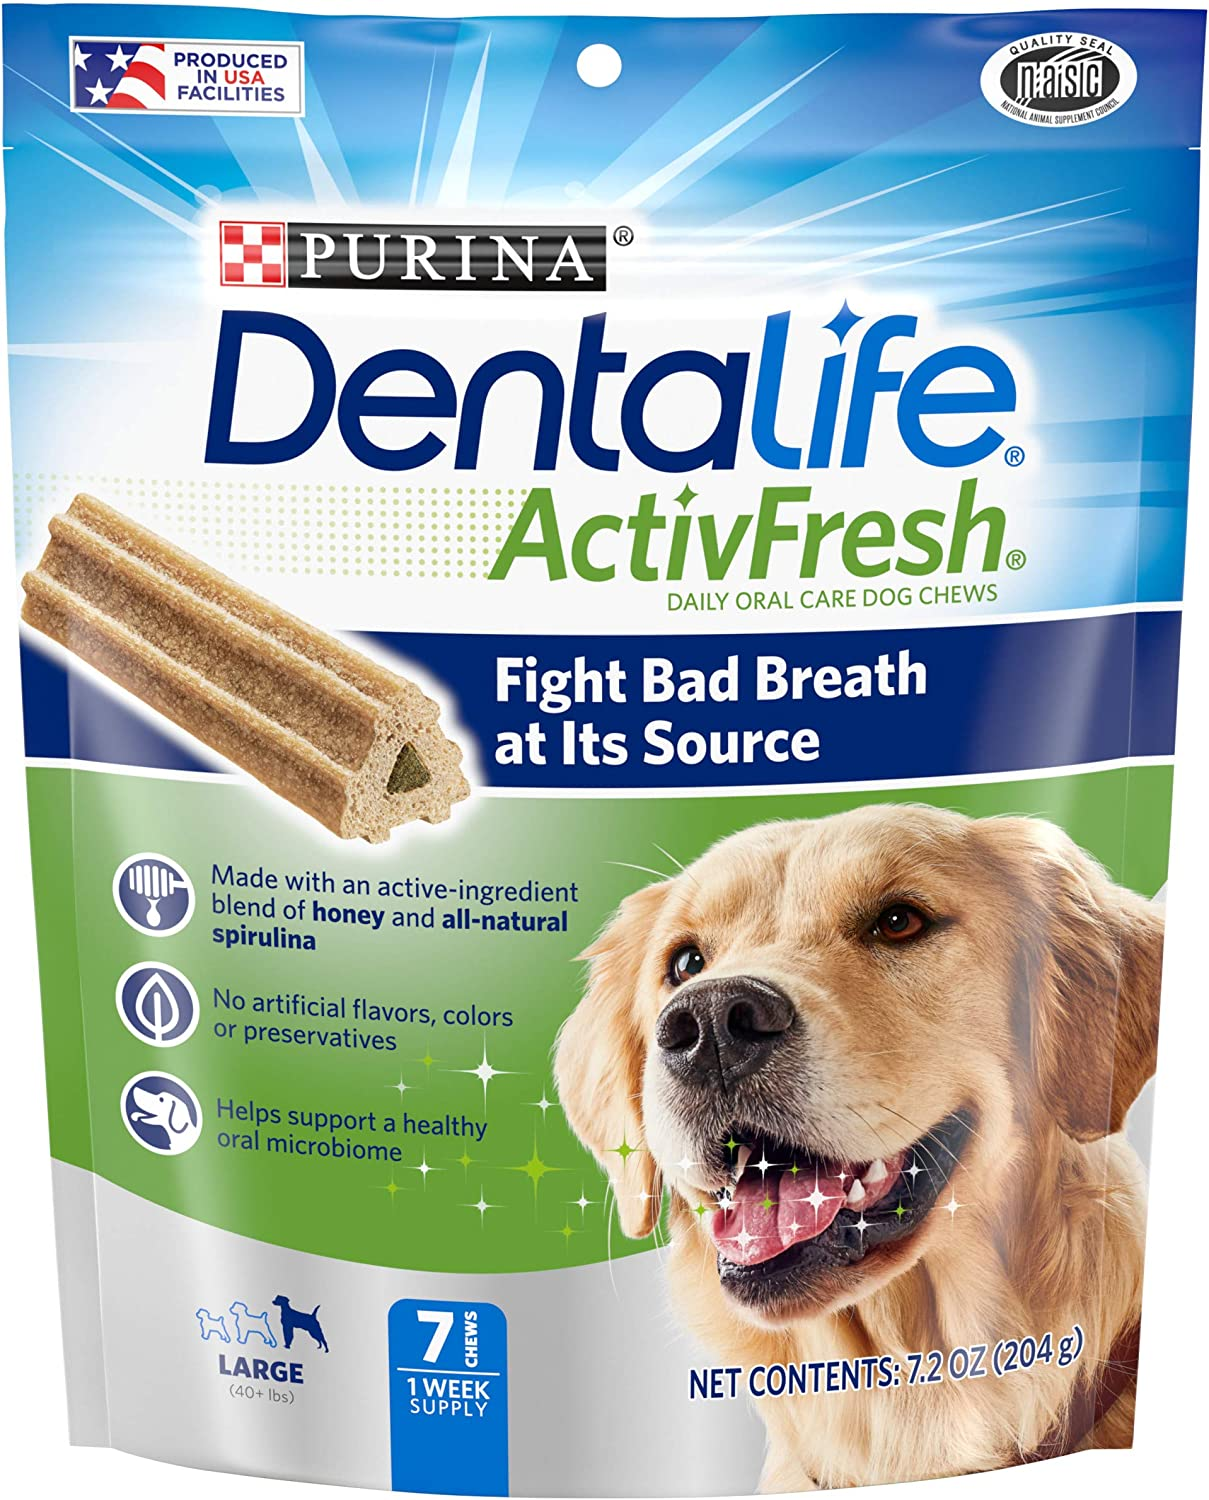 Purina DentaLife Large Breed Dog Dental Chews, ActivFresh Daily Oral Care Large Chews Pack of 5 (7 ct), DENTALIFE ACTIVFRESH Lrg Dog, 7.2 oz